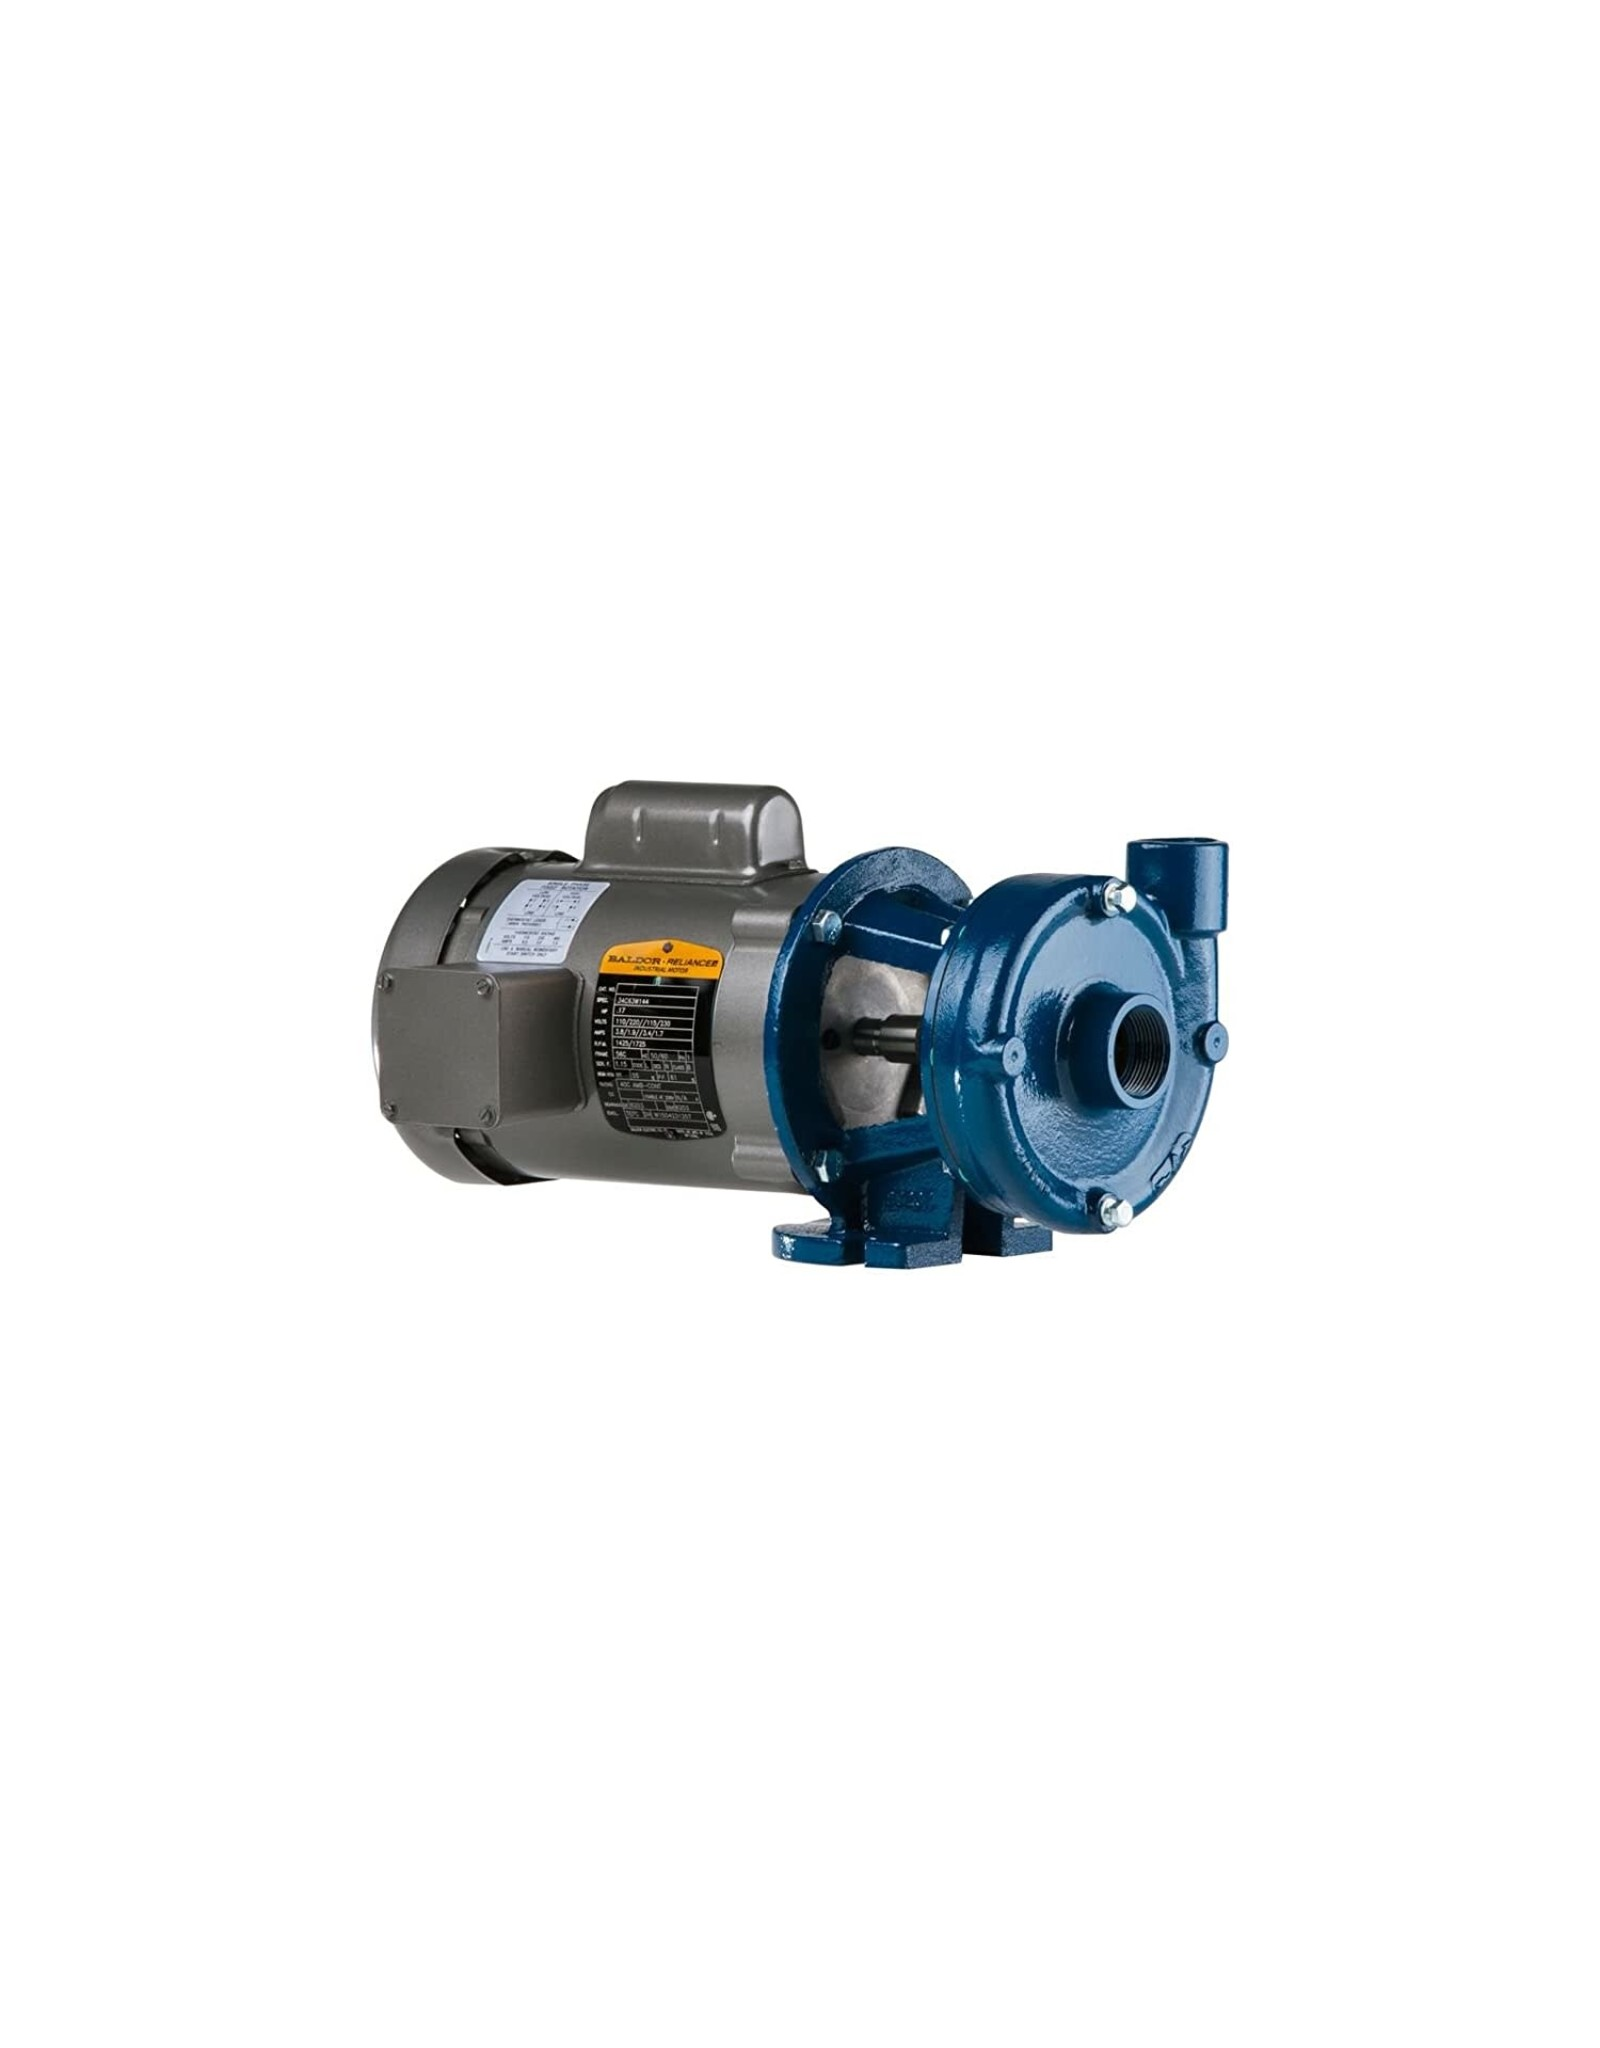 PRICE PUMP Price Pump CD150AI-494-6A111-300-36-1D6 Close Coupled Horizontal and Vertical Centrifugal Pumps, 3HP, Max 170 GPM, ODP Motor Enclosed, 170 GSM Maximum Flow Rate, Cast Iron